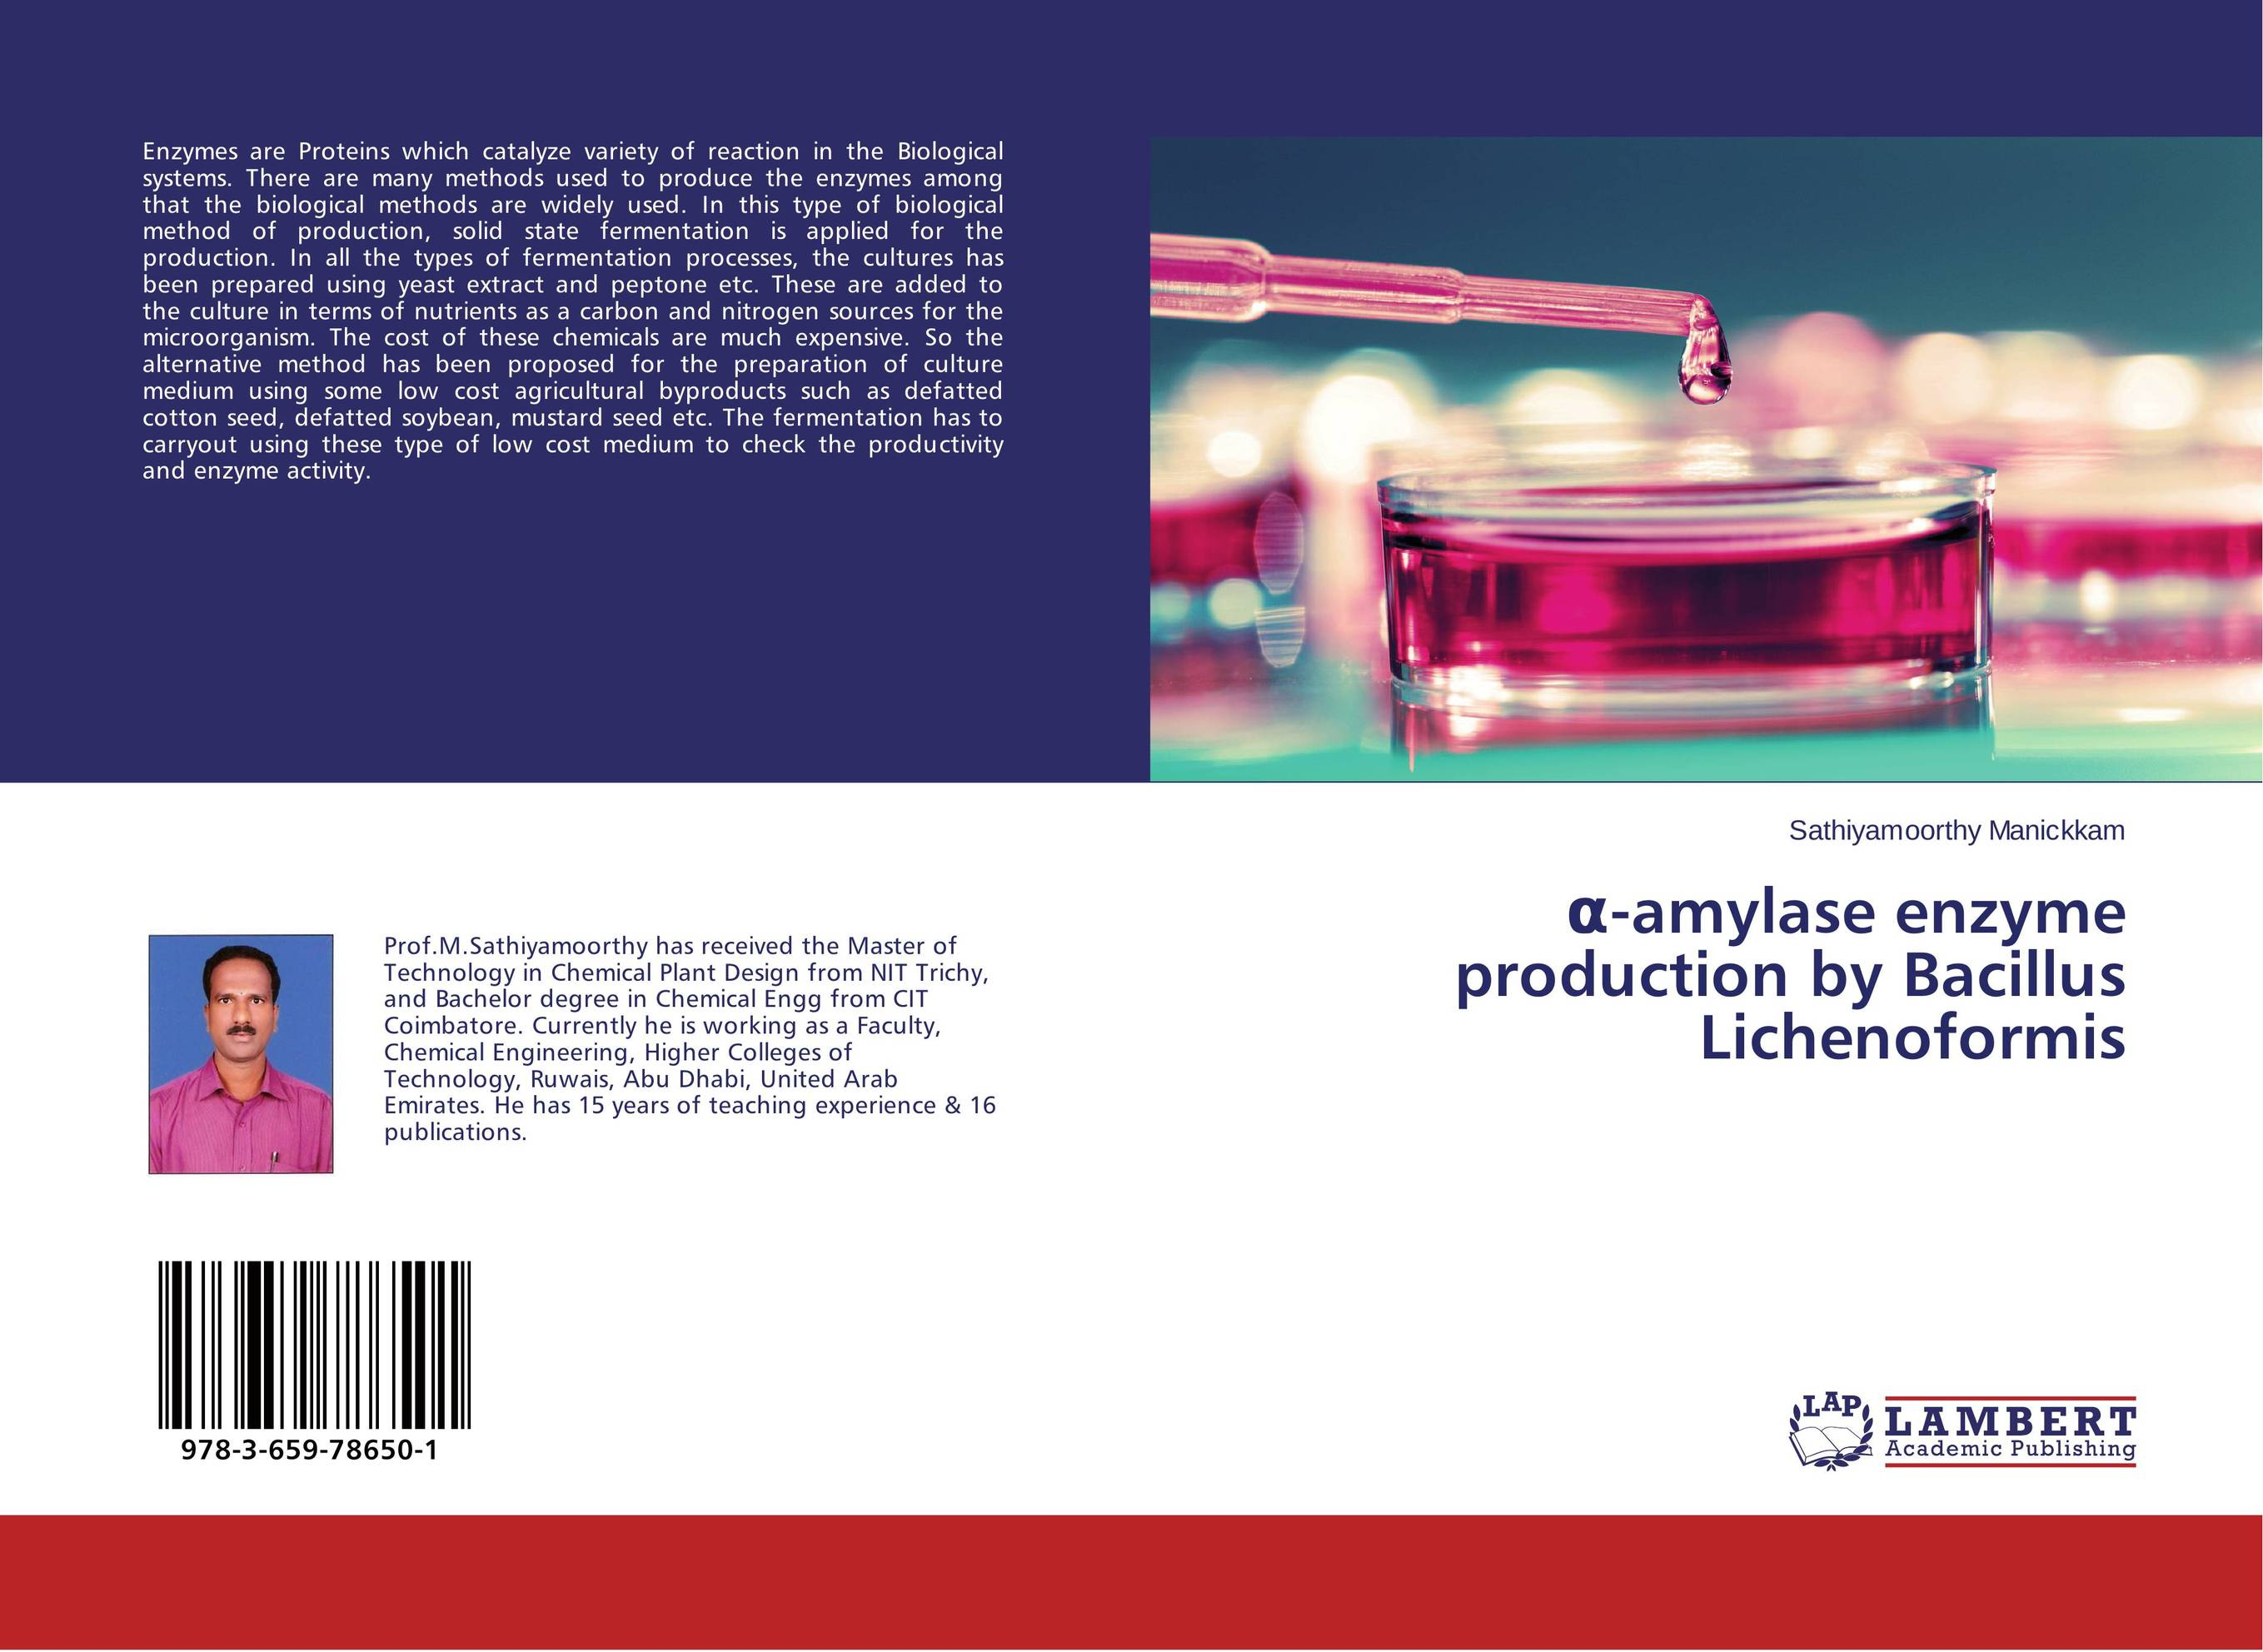 ?-amylase enzyme production by Bacillus Lichenoformis estimation of stochastic cost and production frontiers